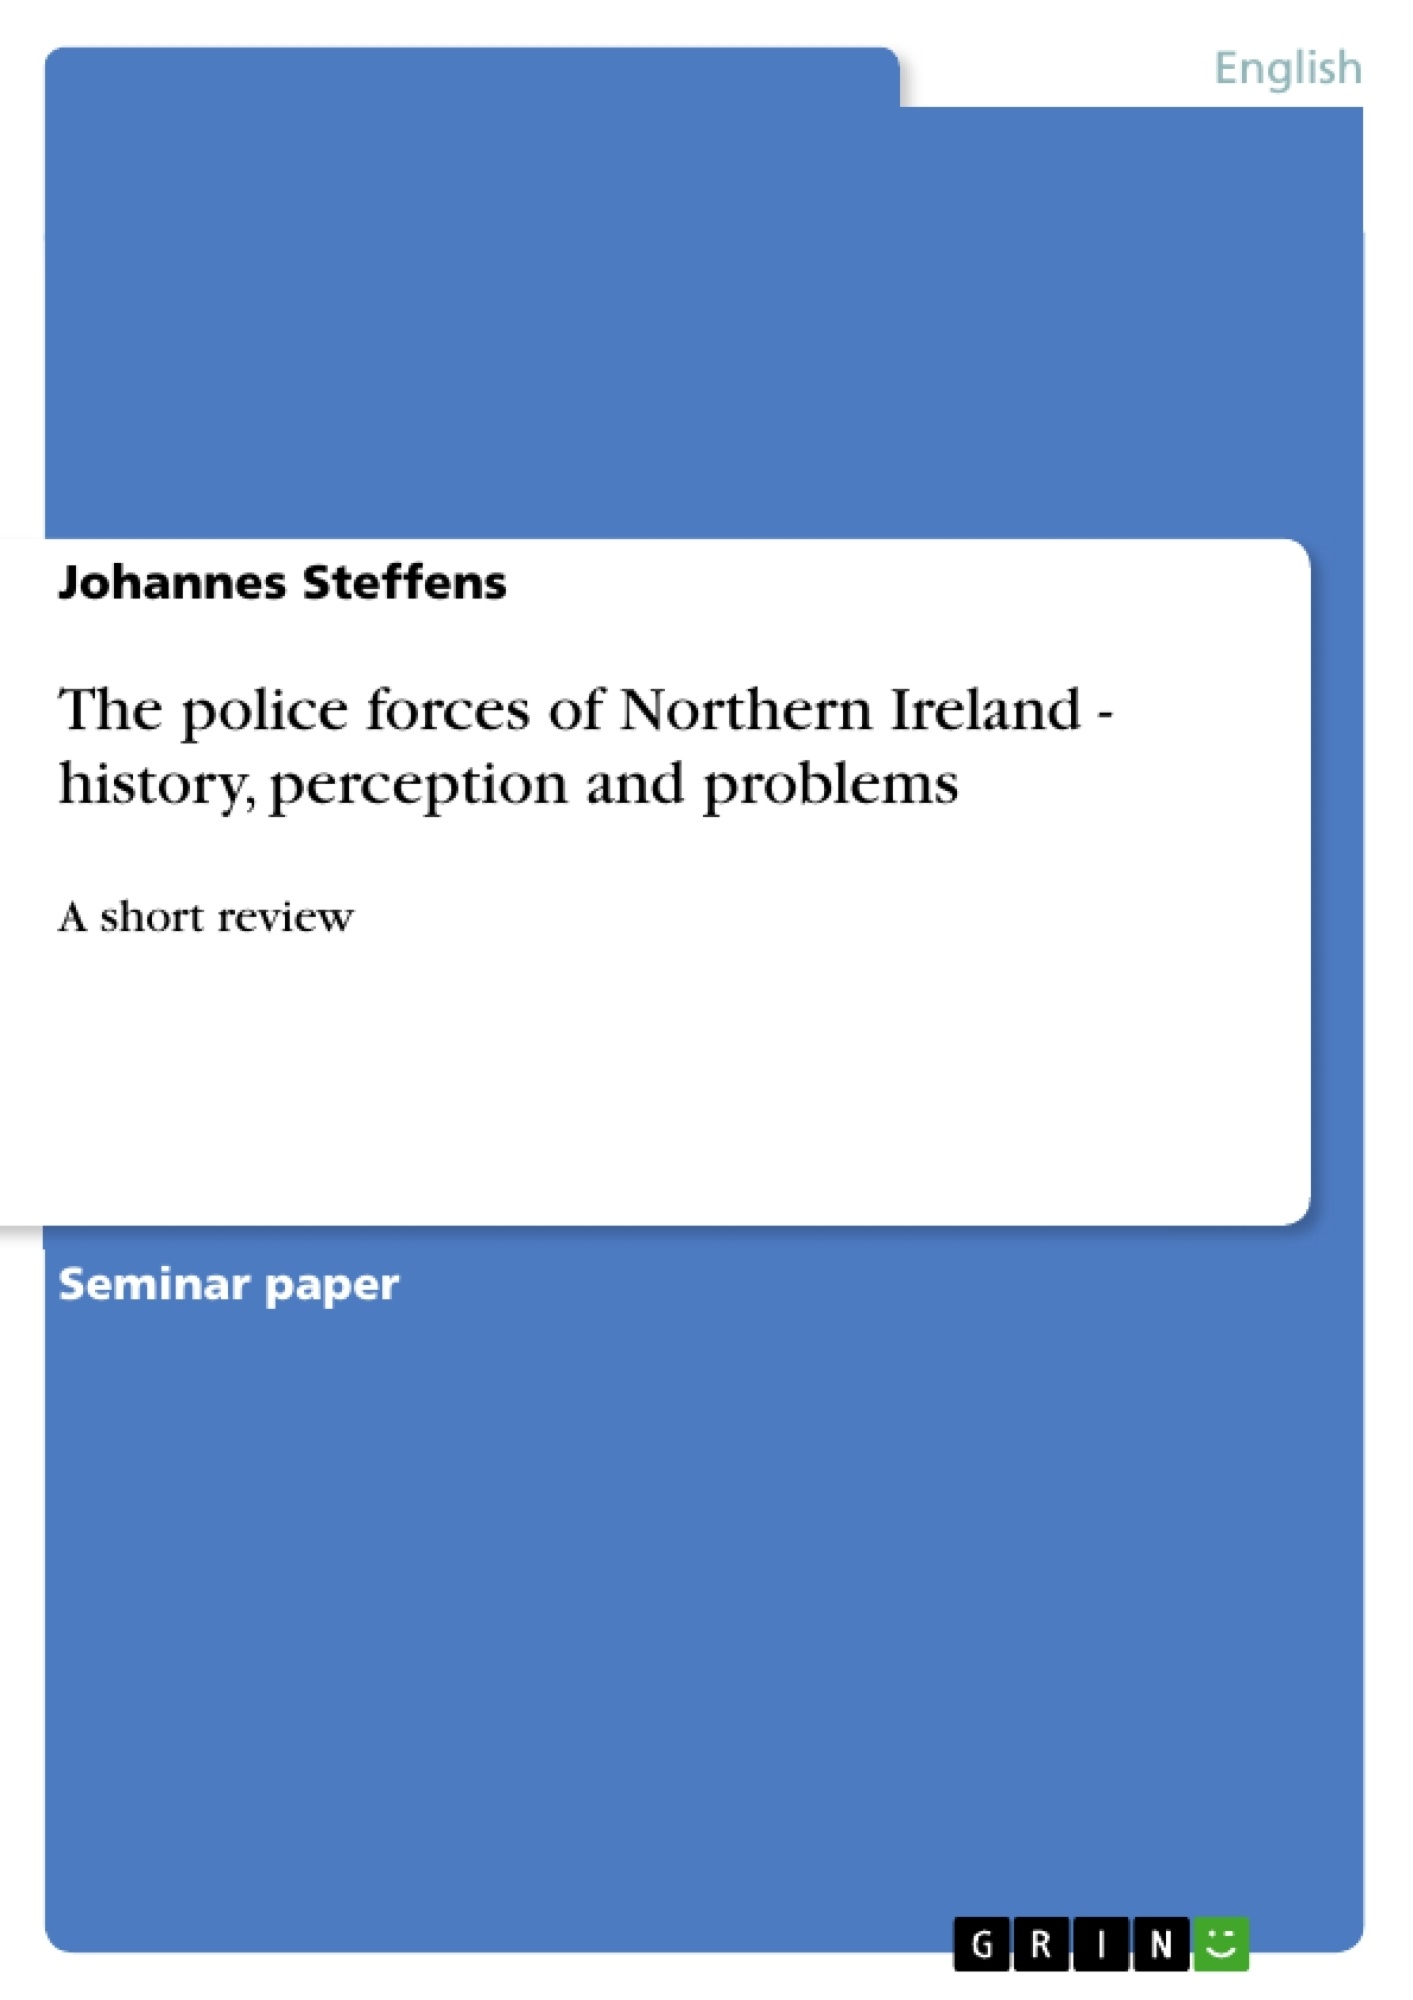 Title: The police forces of Northern Ireland - history, perception and problems